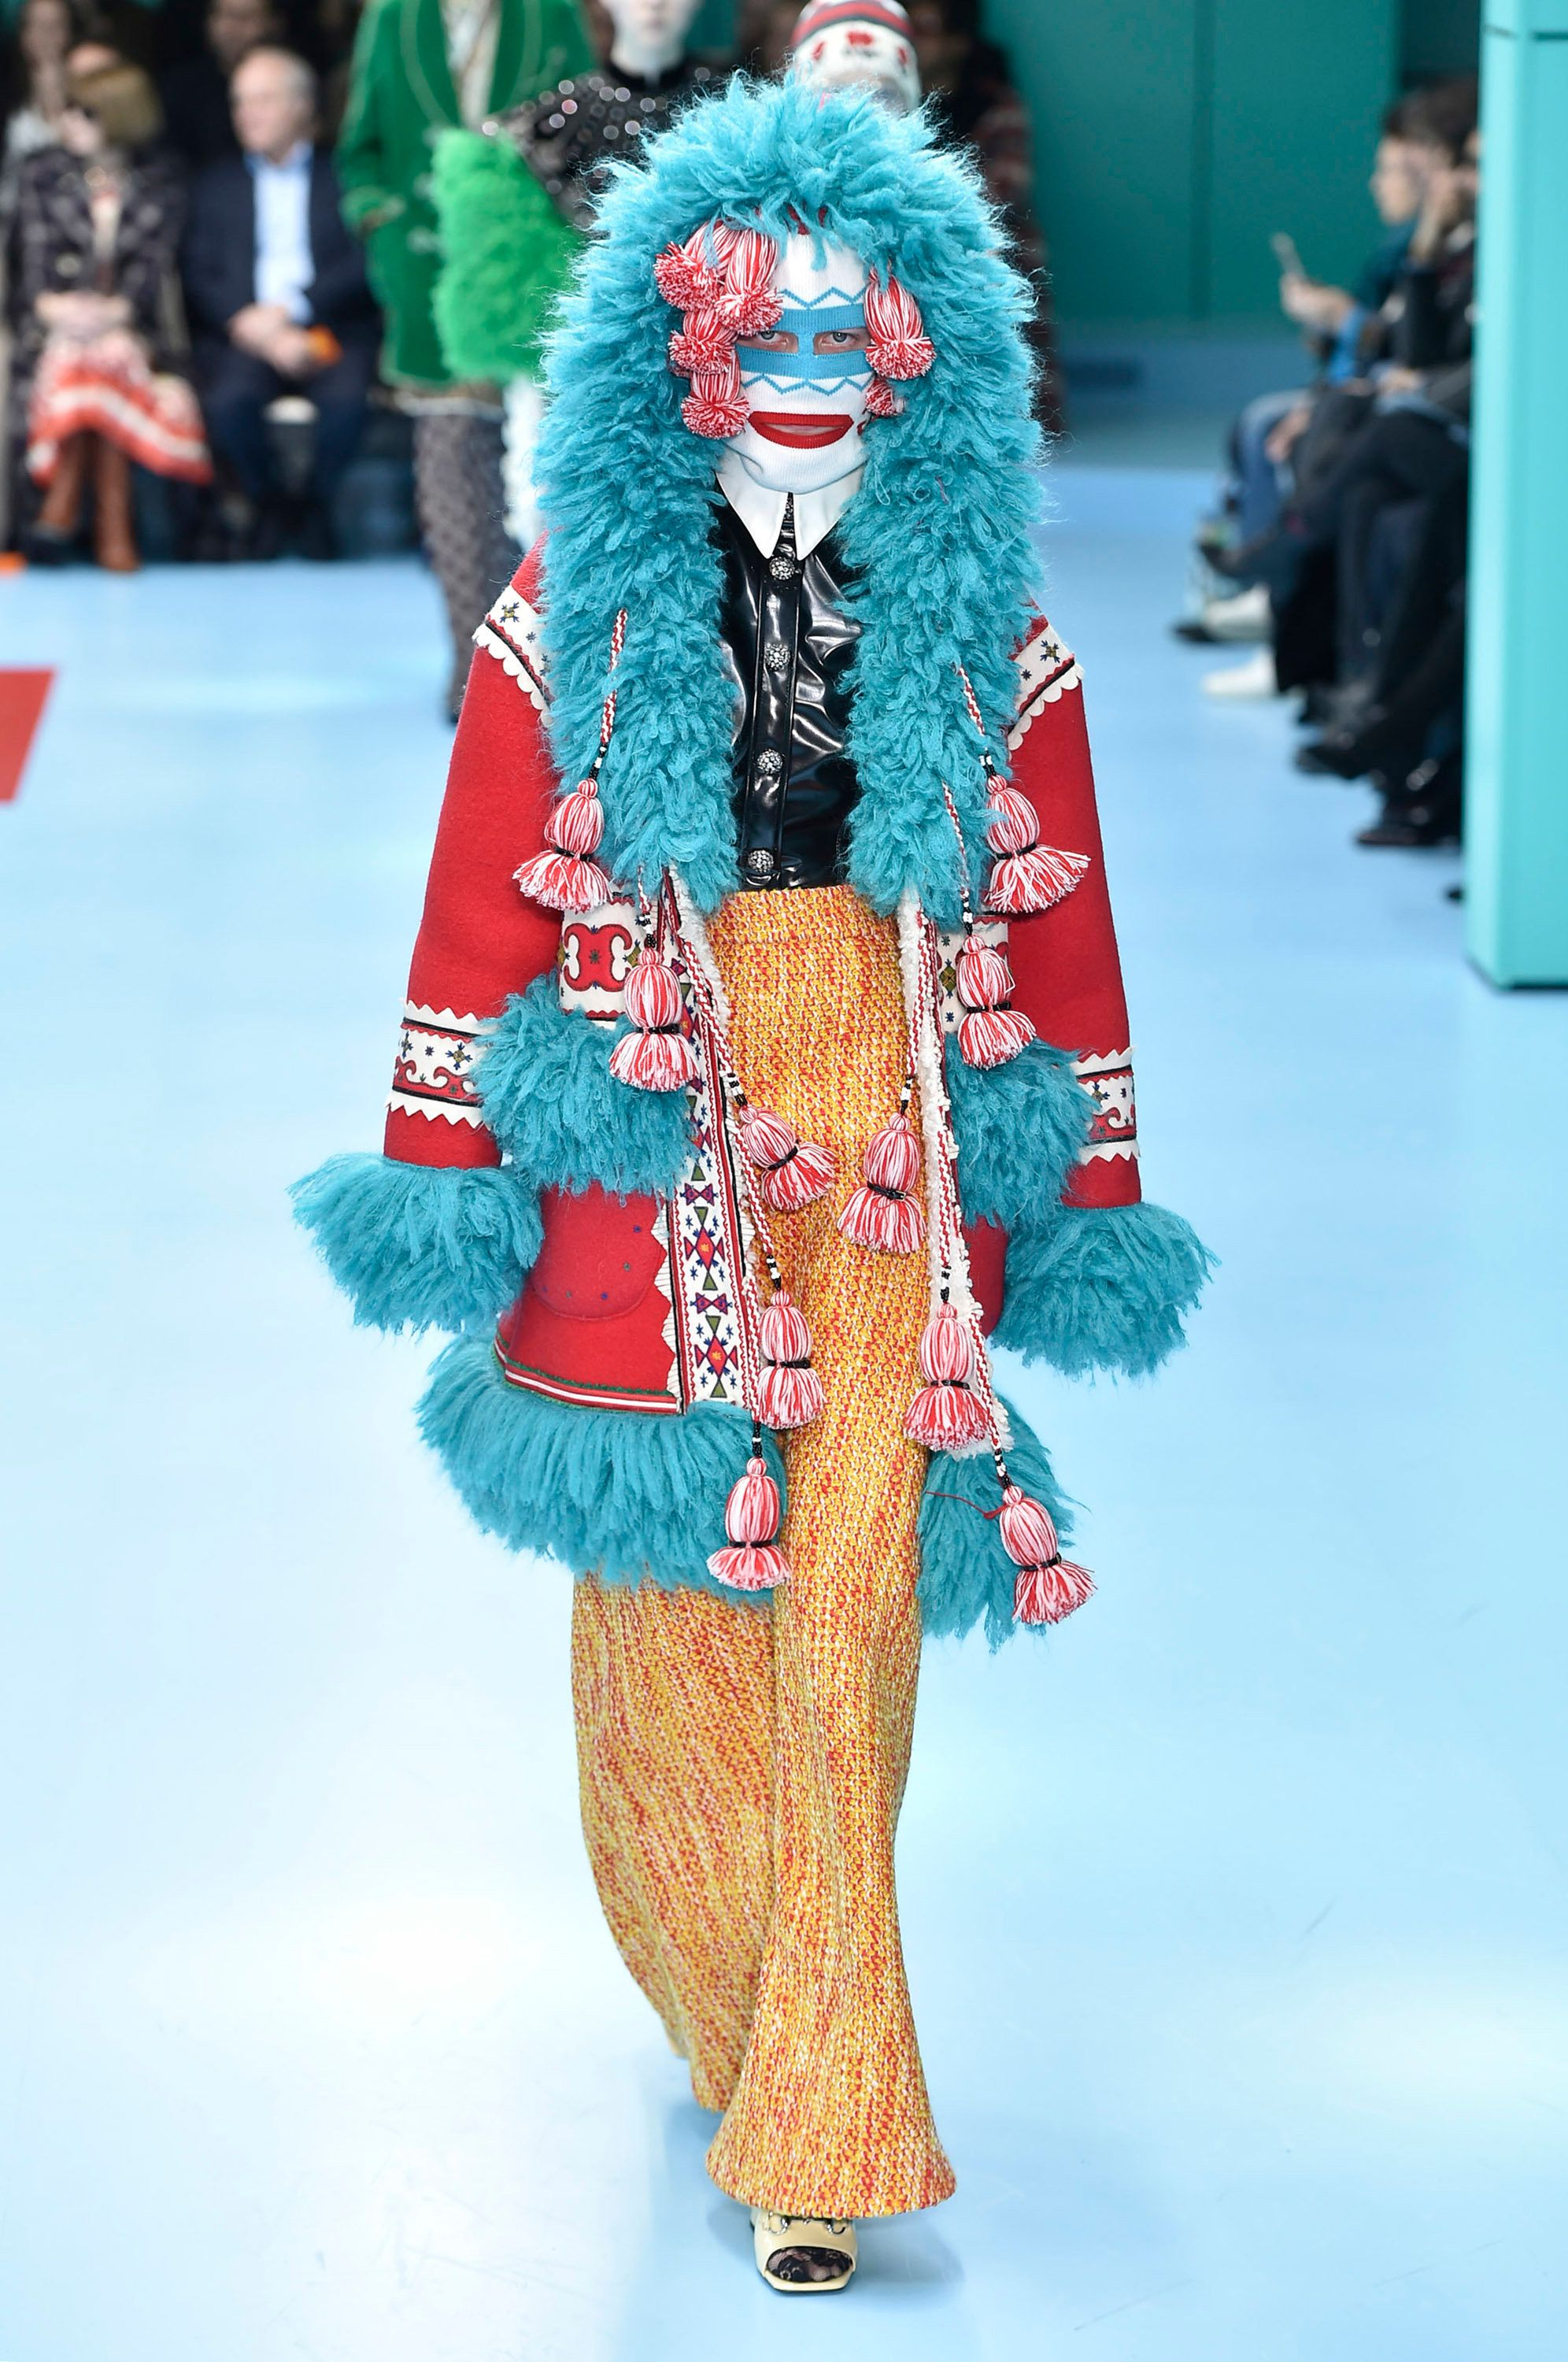 The Most Outrageous Looks From European Fashion Weeks So